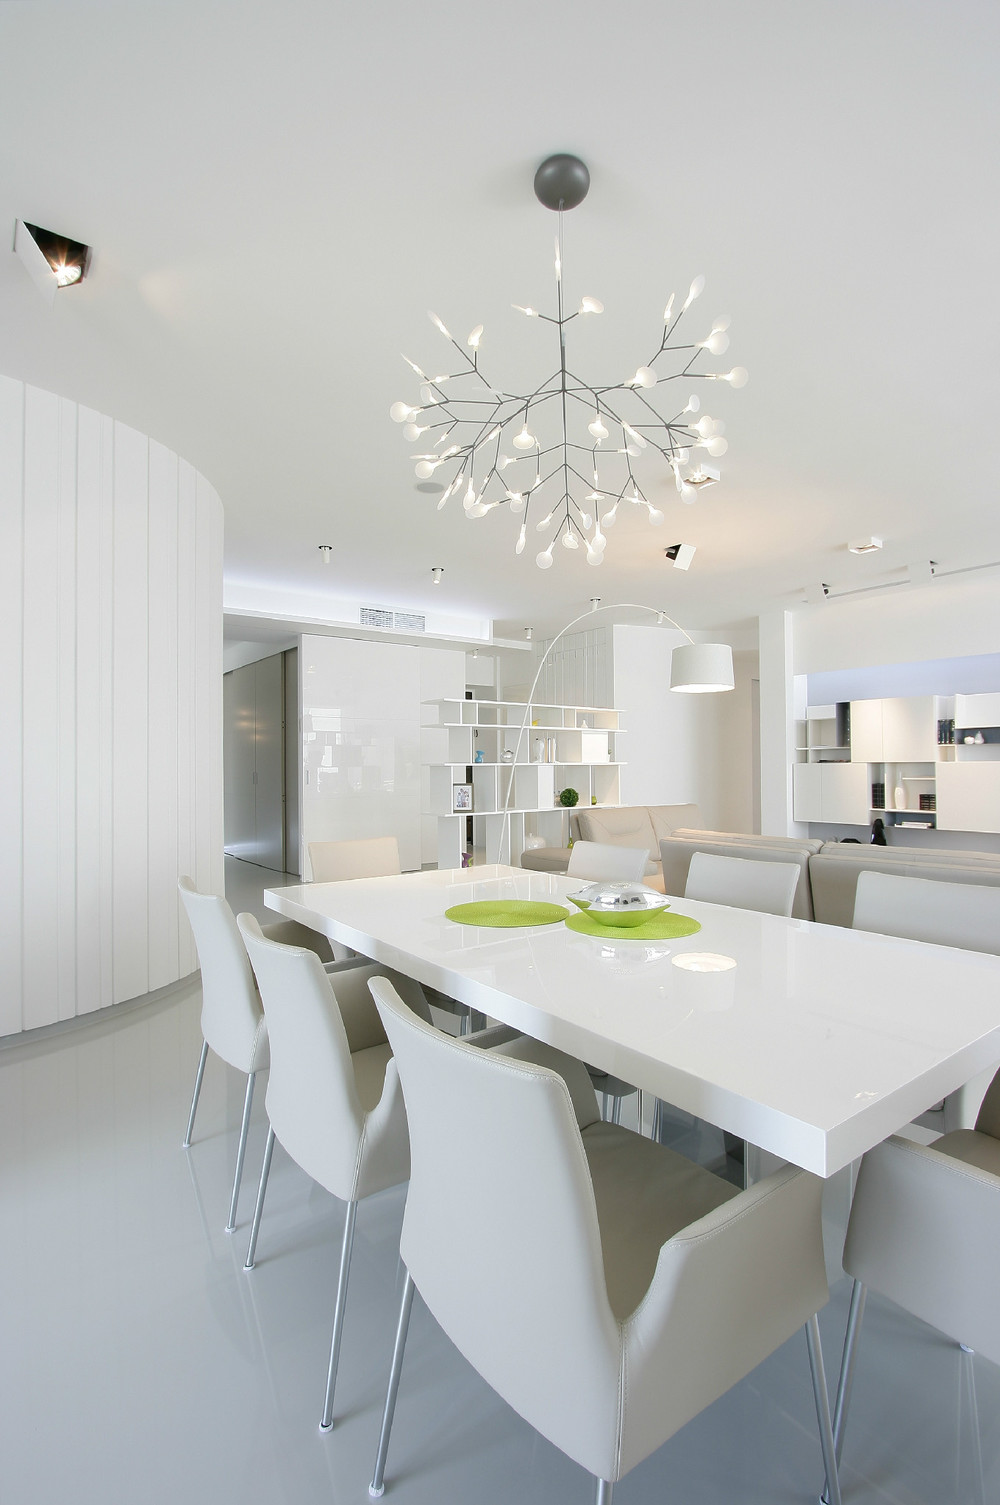 Gloss White Dining Table - Glowing interior designs